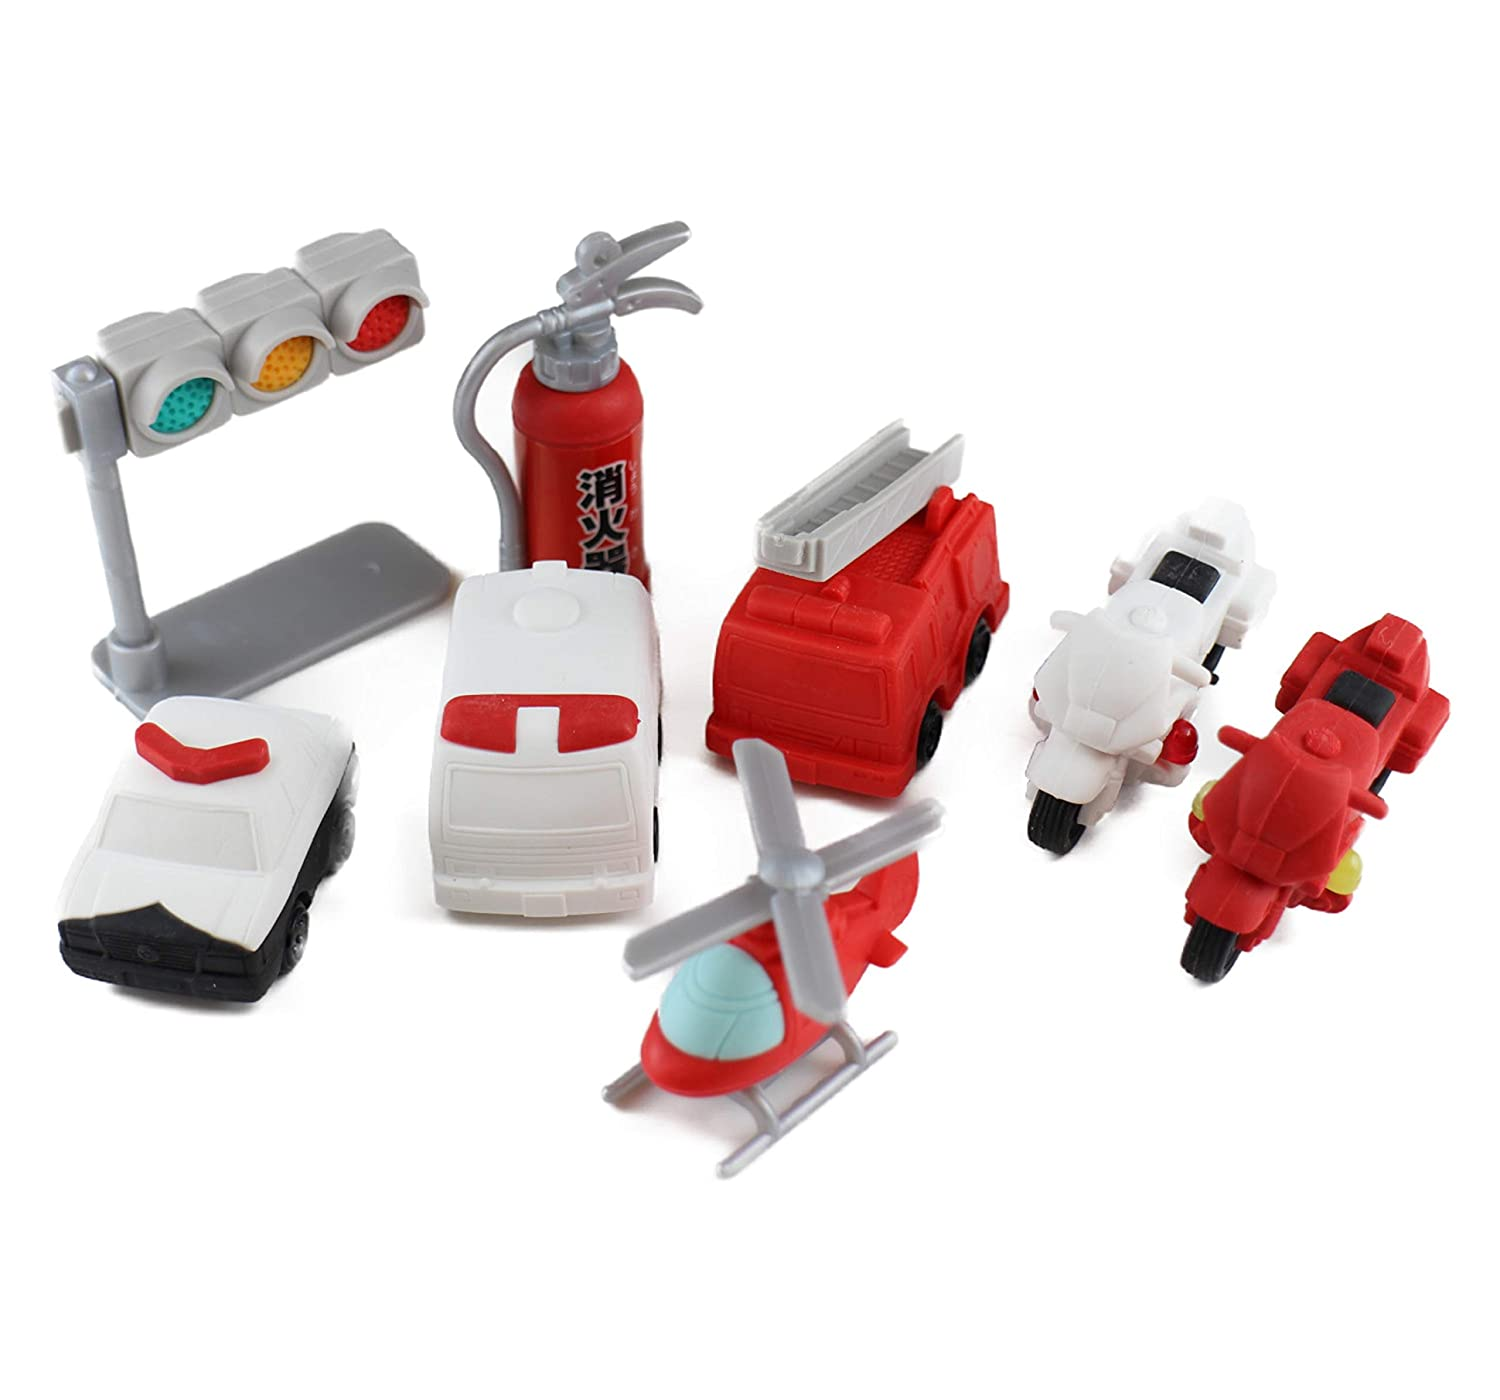 Iwako Japanese Erasers Police and Fire Fighting Set of 8 with Japanese Stationery Original Package Japanese stationery store